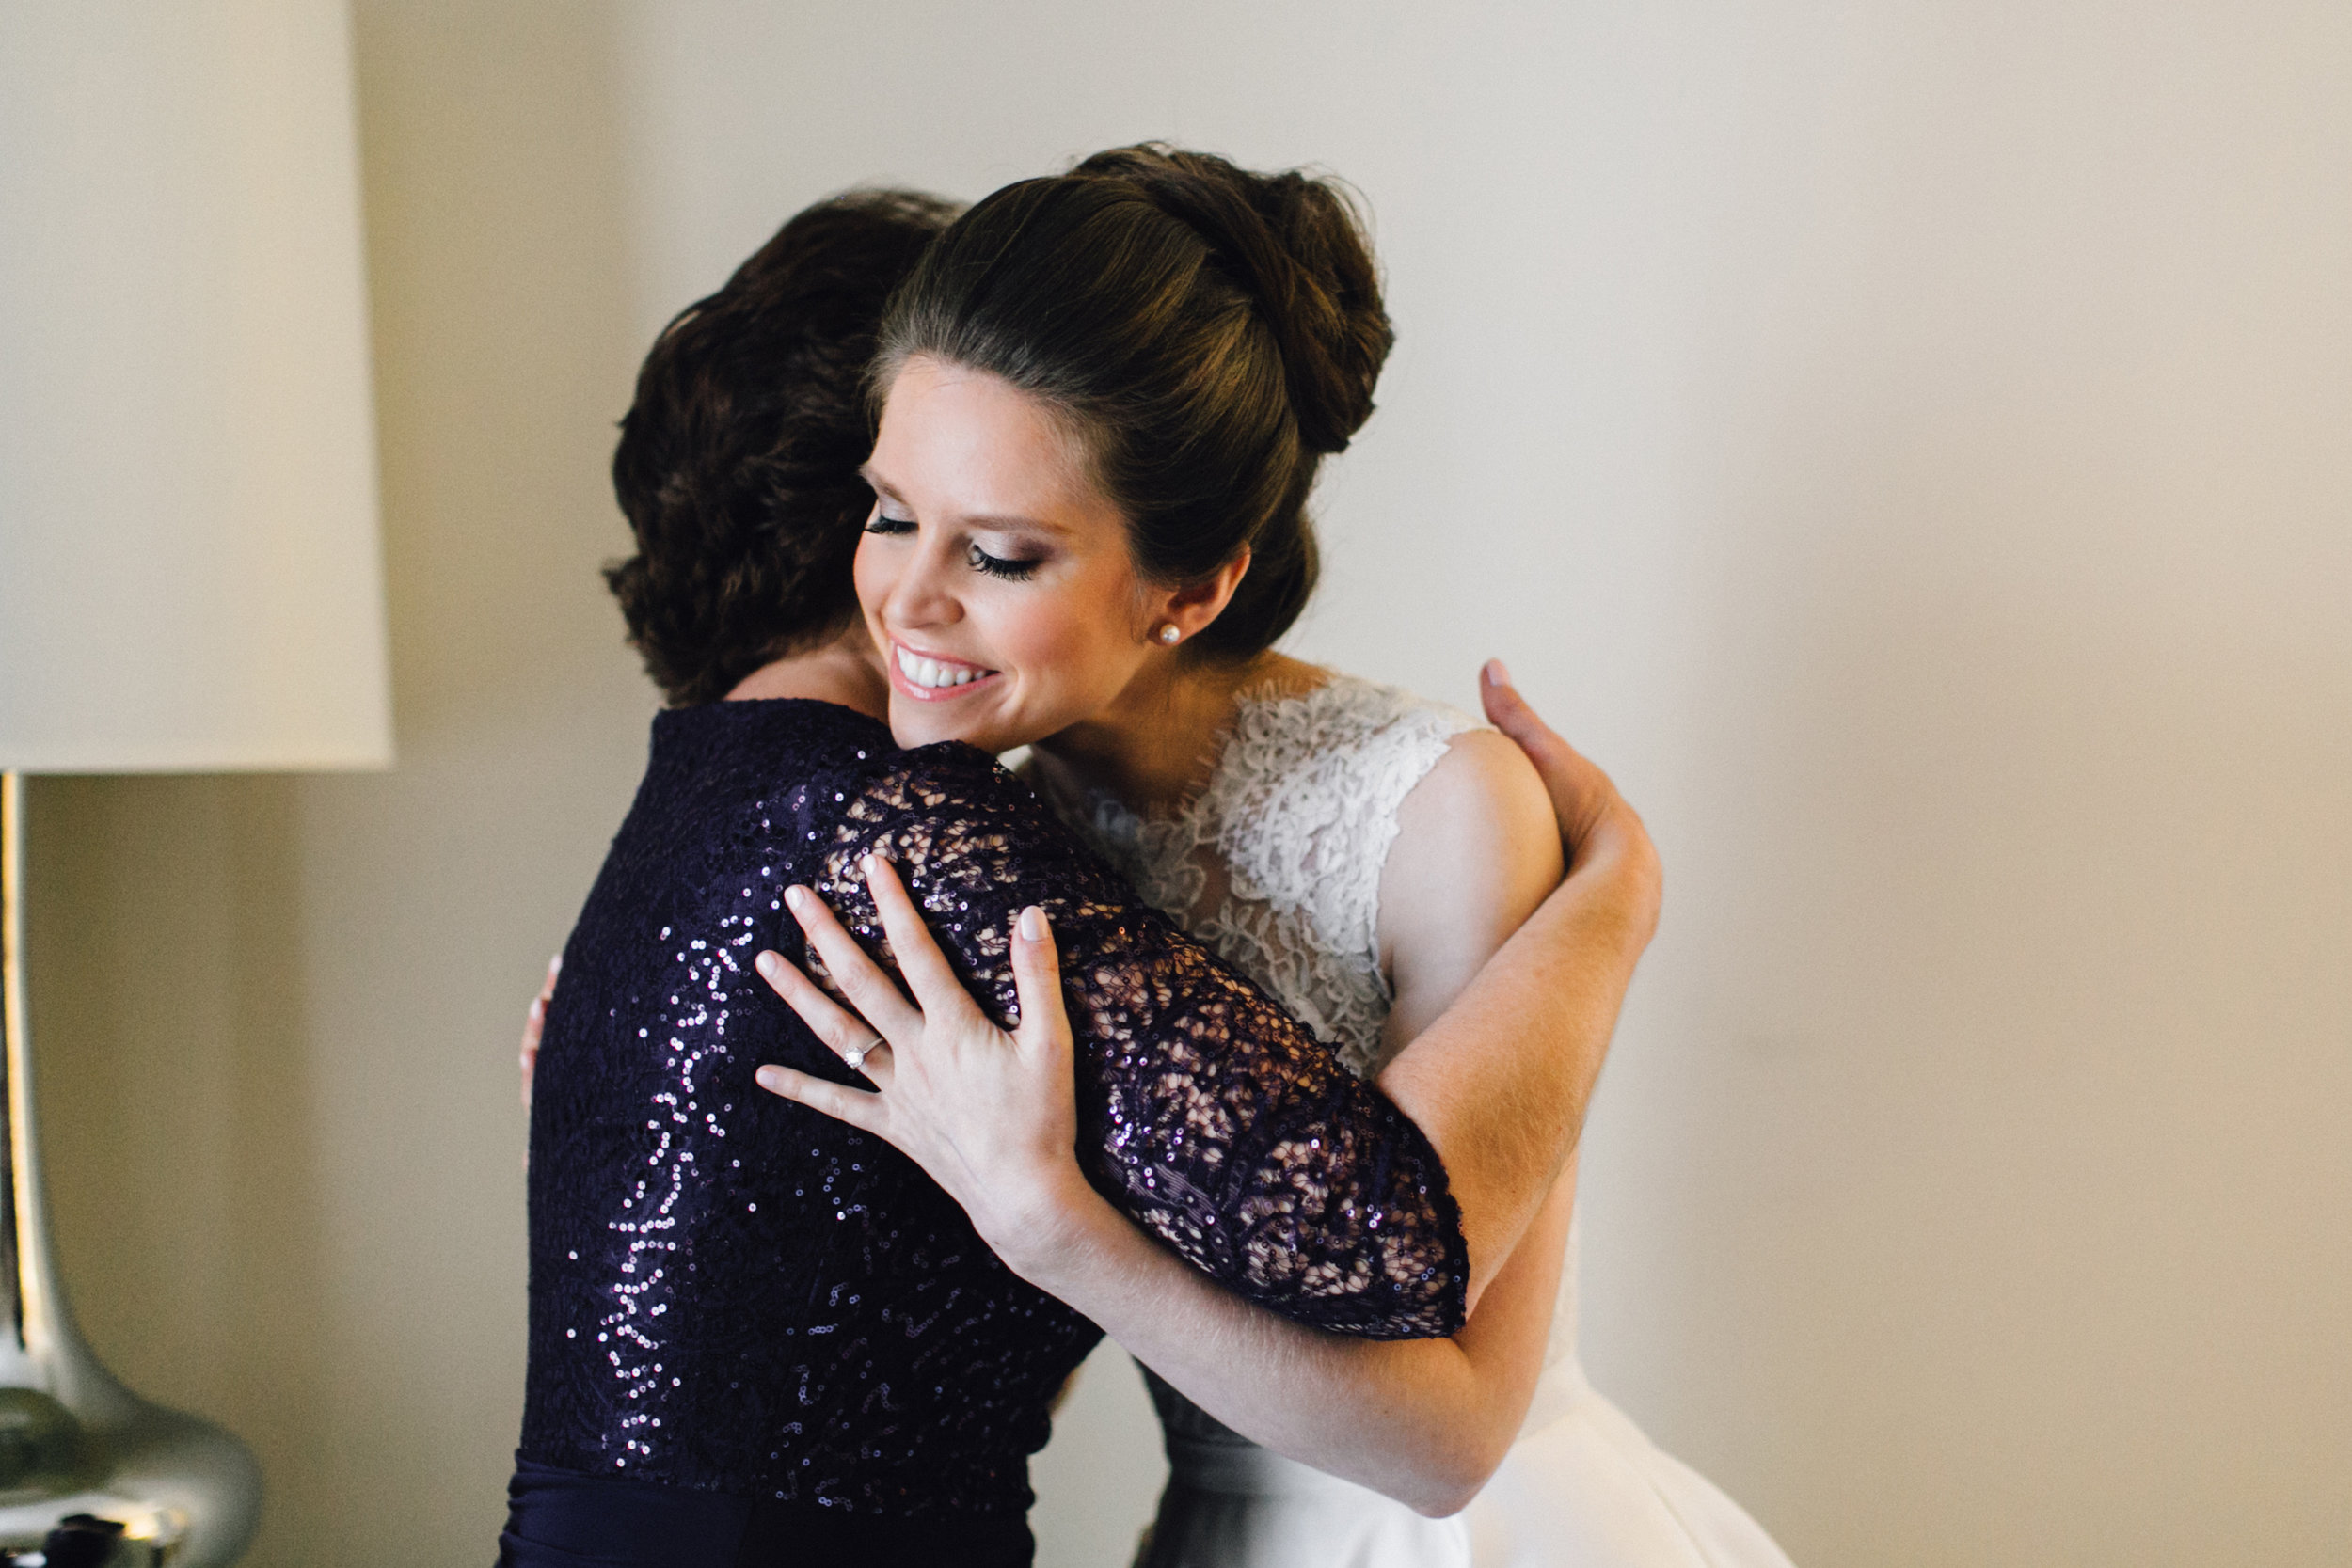 Bride hugging her mom - Maria Vicencio Photography Weddings